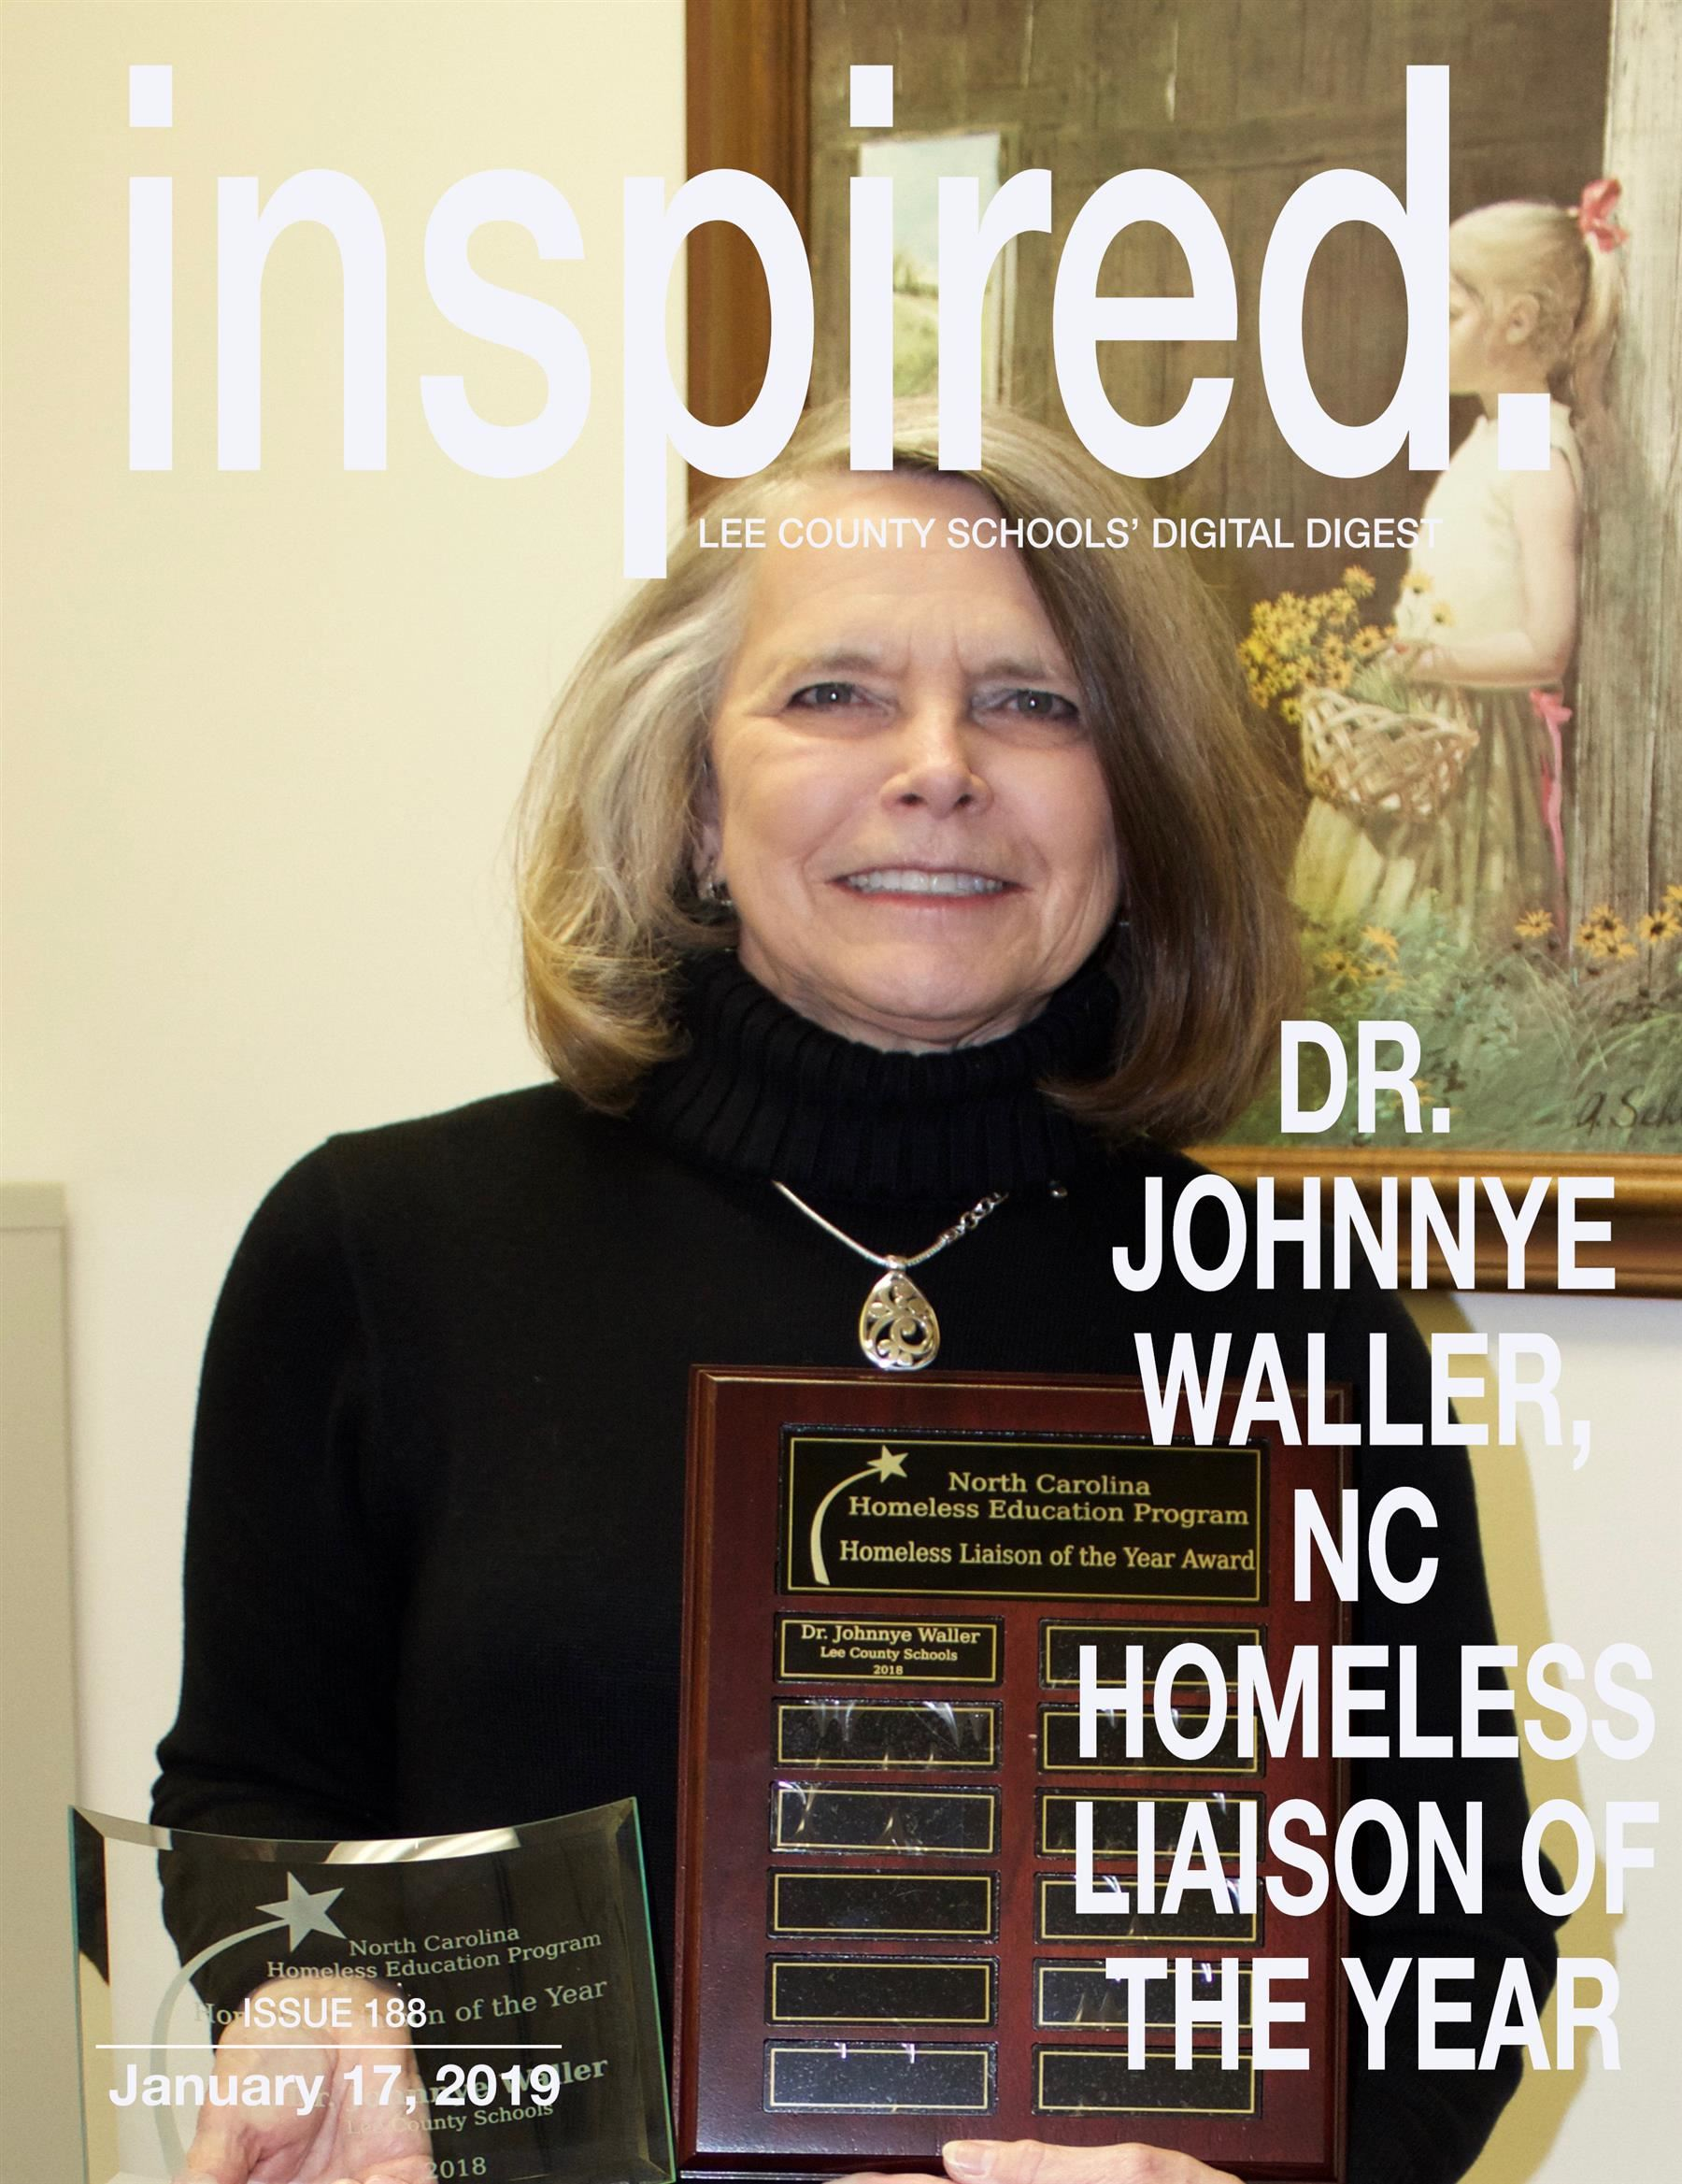 Dr. Johnnye Waller, NC Homeless Liaison of the Year